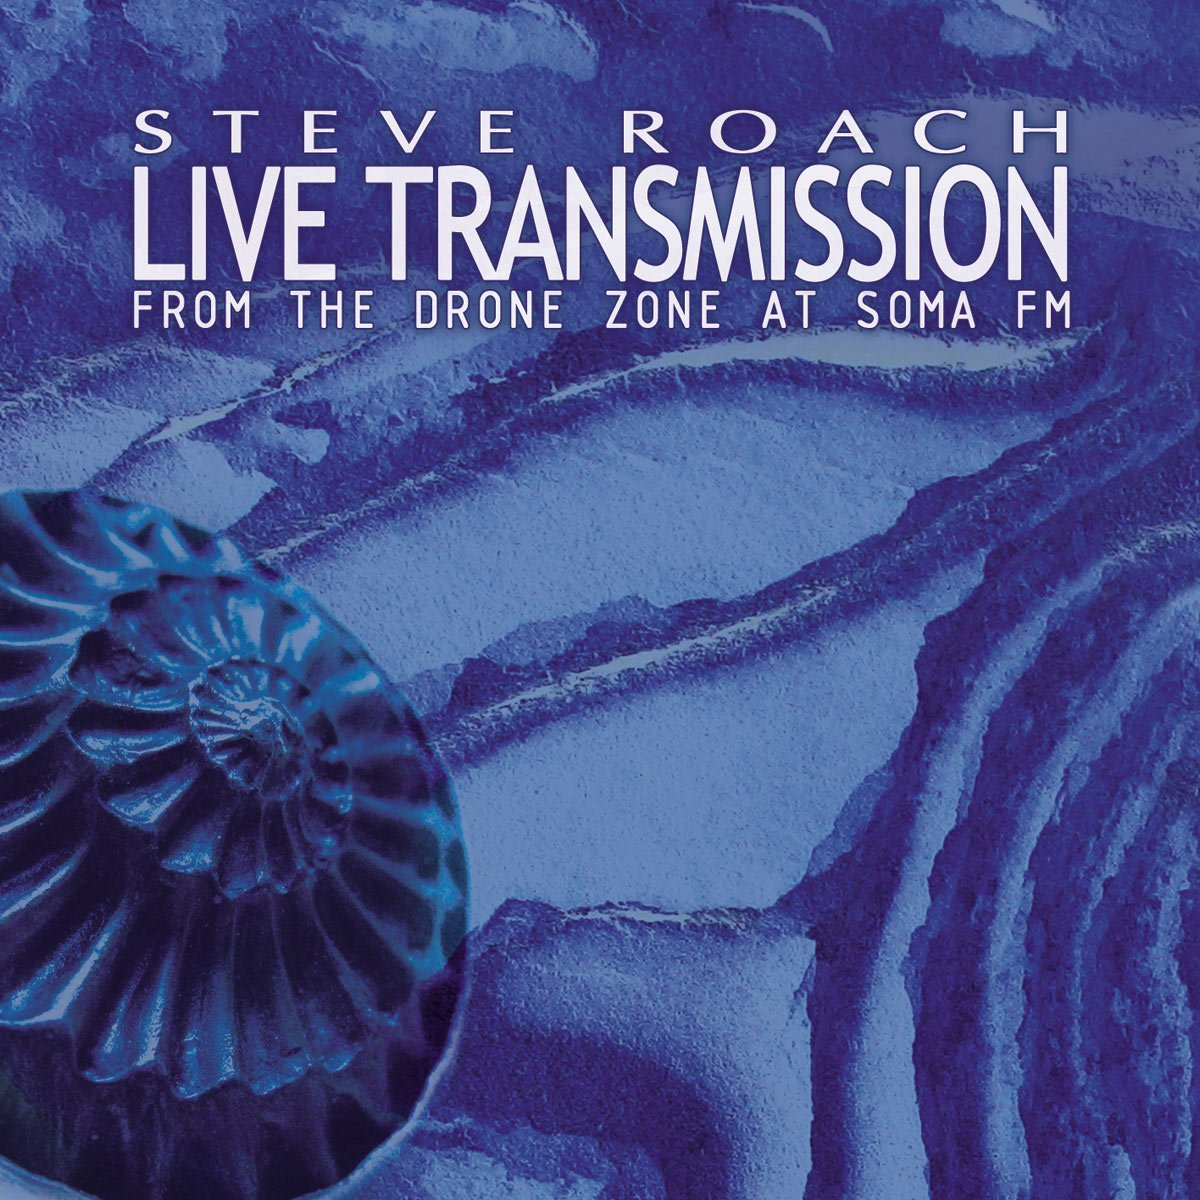 Steve Roach — Live Transmission: From the Drone Zone at SOMA FM